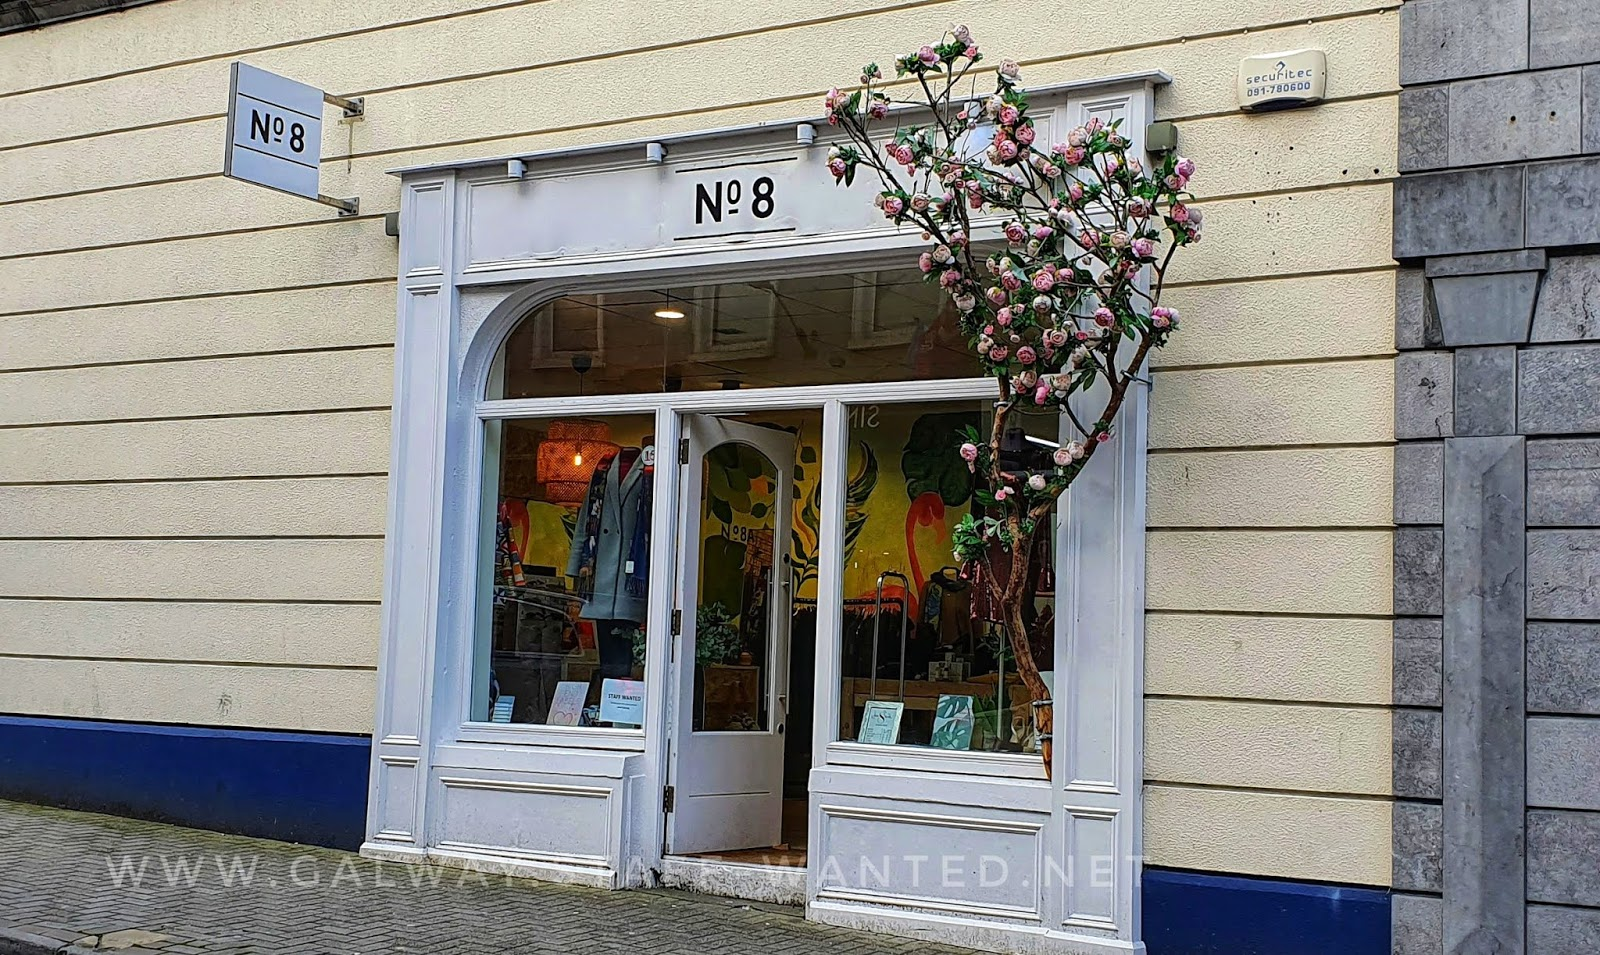 shopfront decorated with artificial branch of cherry blossom tree with pale pink flowers